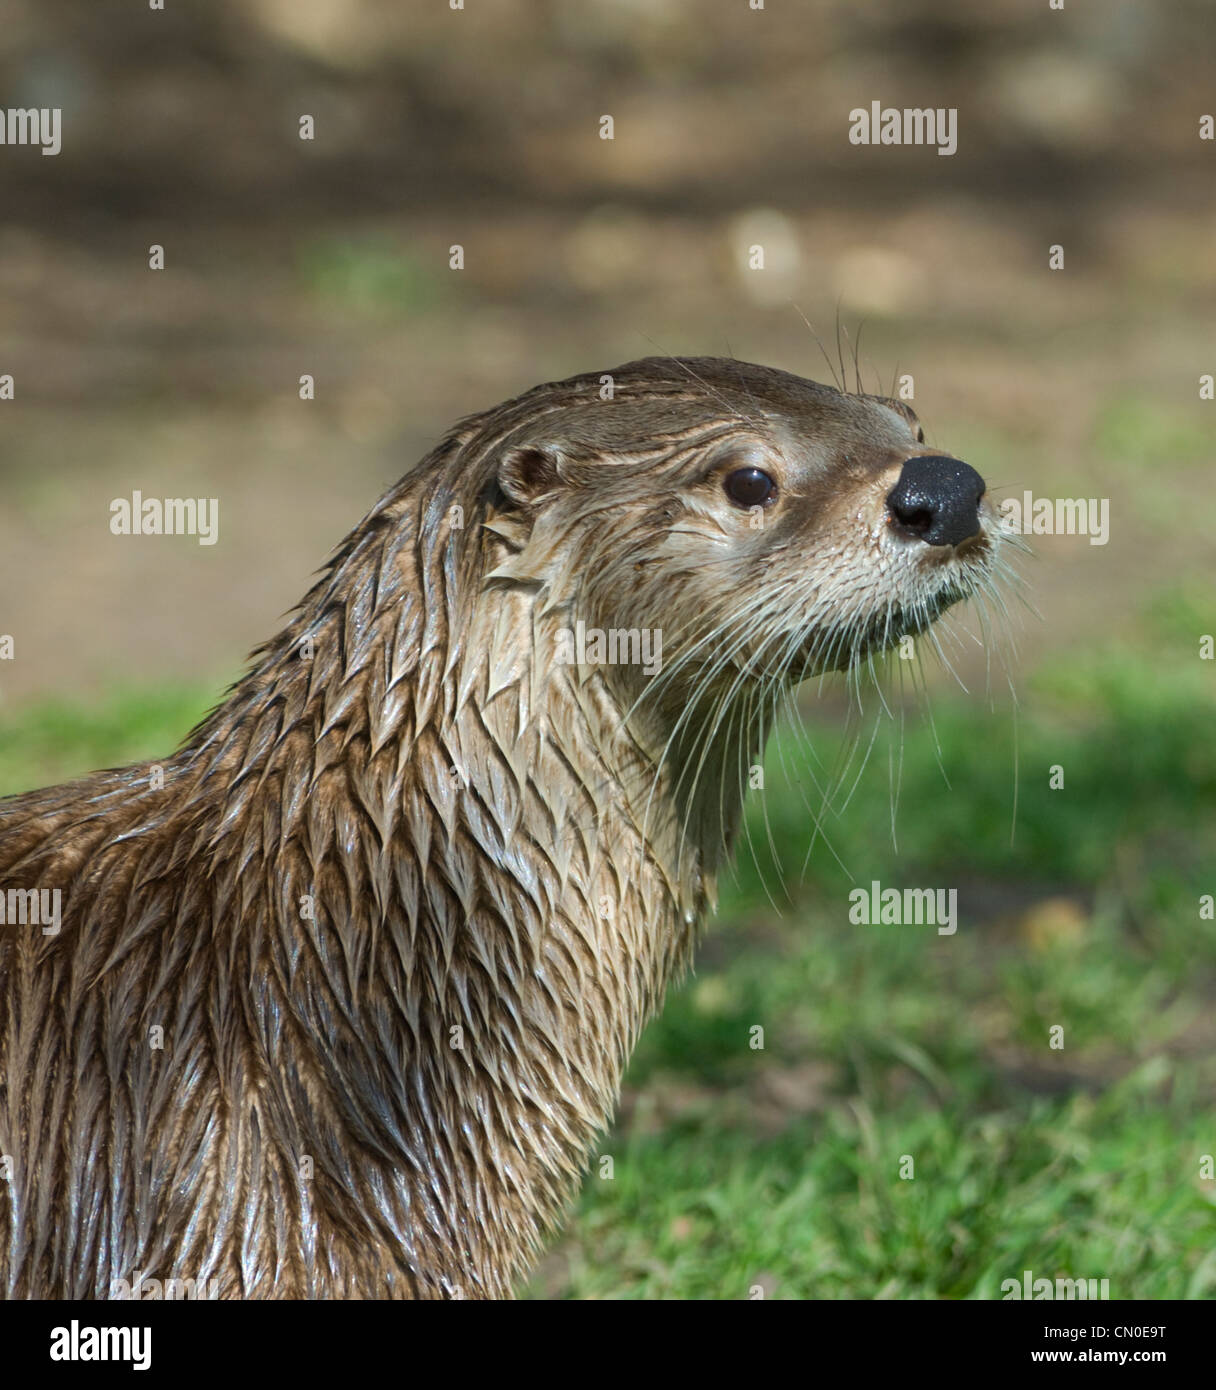 North American River Otter (Lontra canadensis) Stock Photo